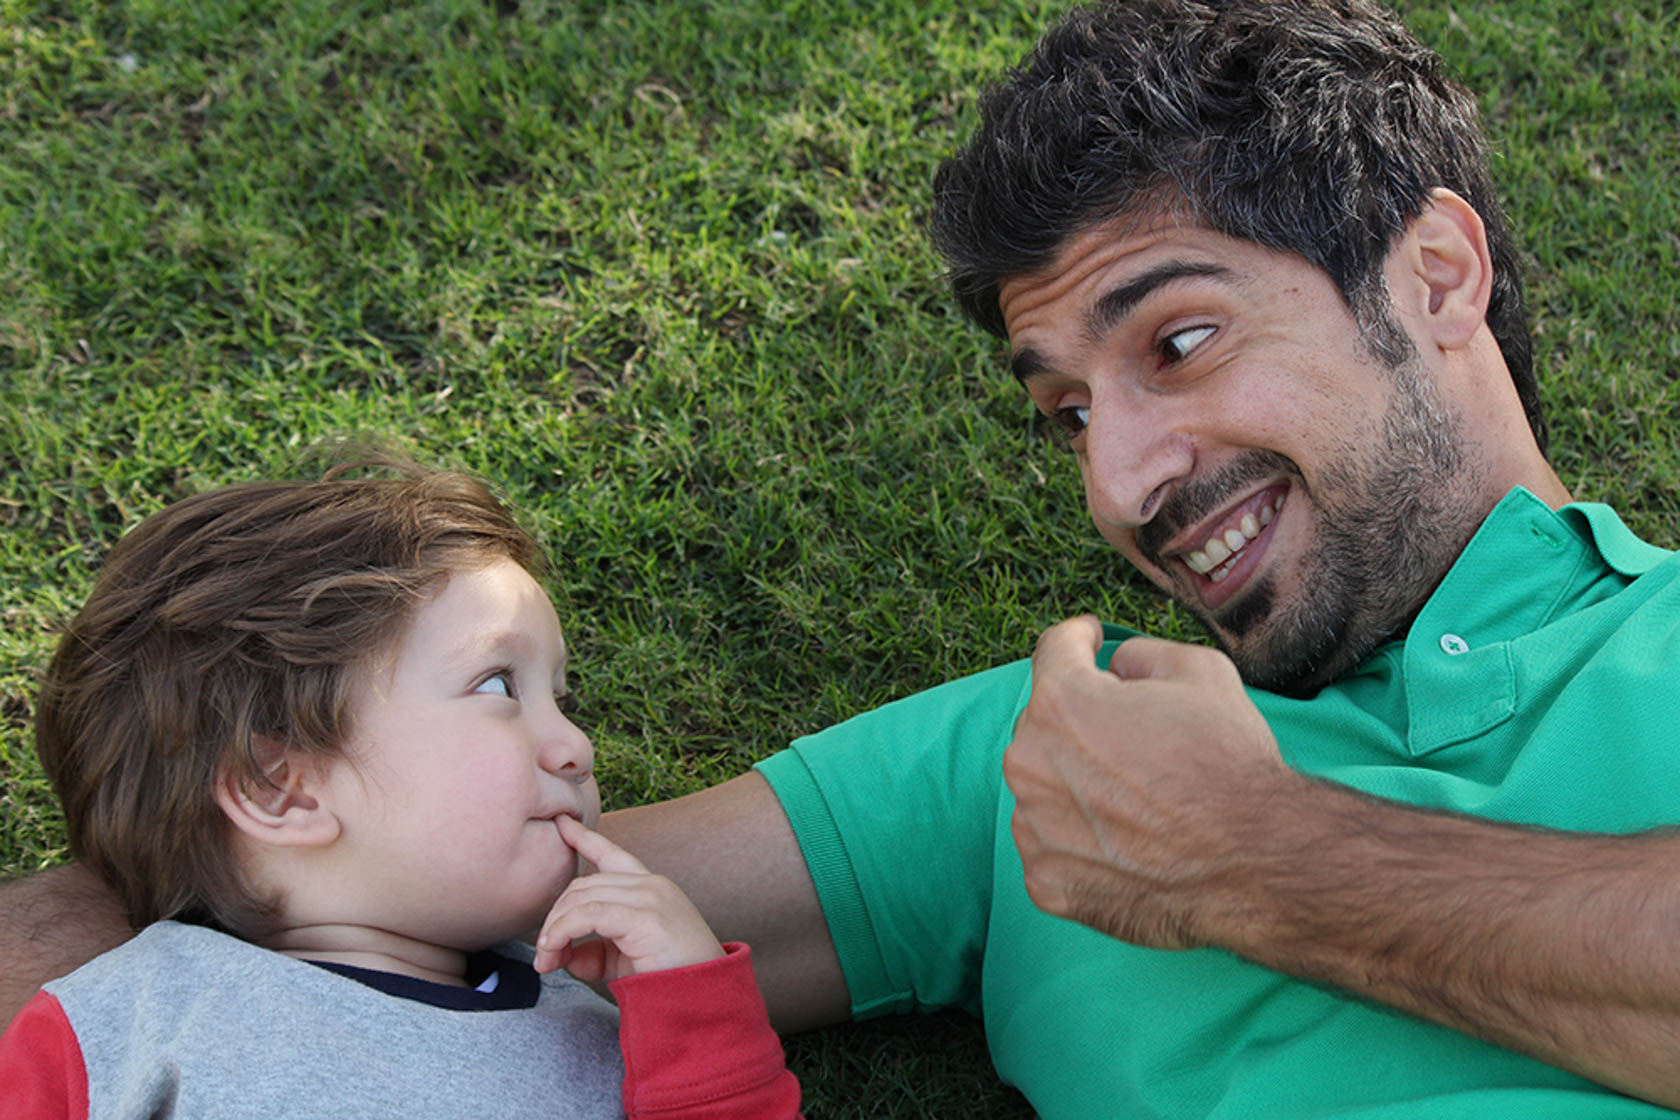 Father and son lying on grass taken with Canon EOS 1300D DSLR camera